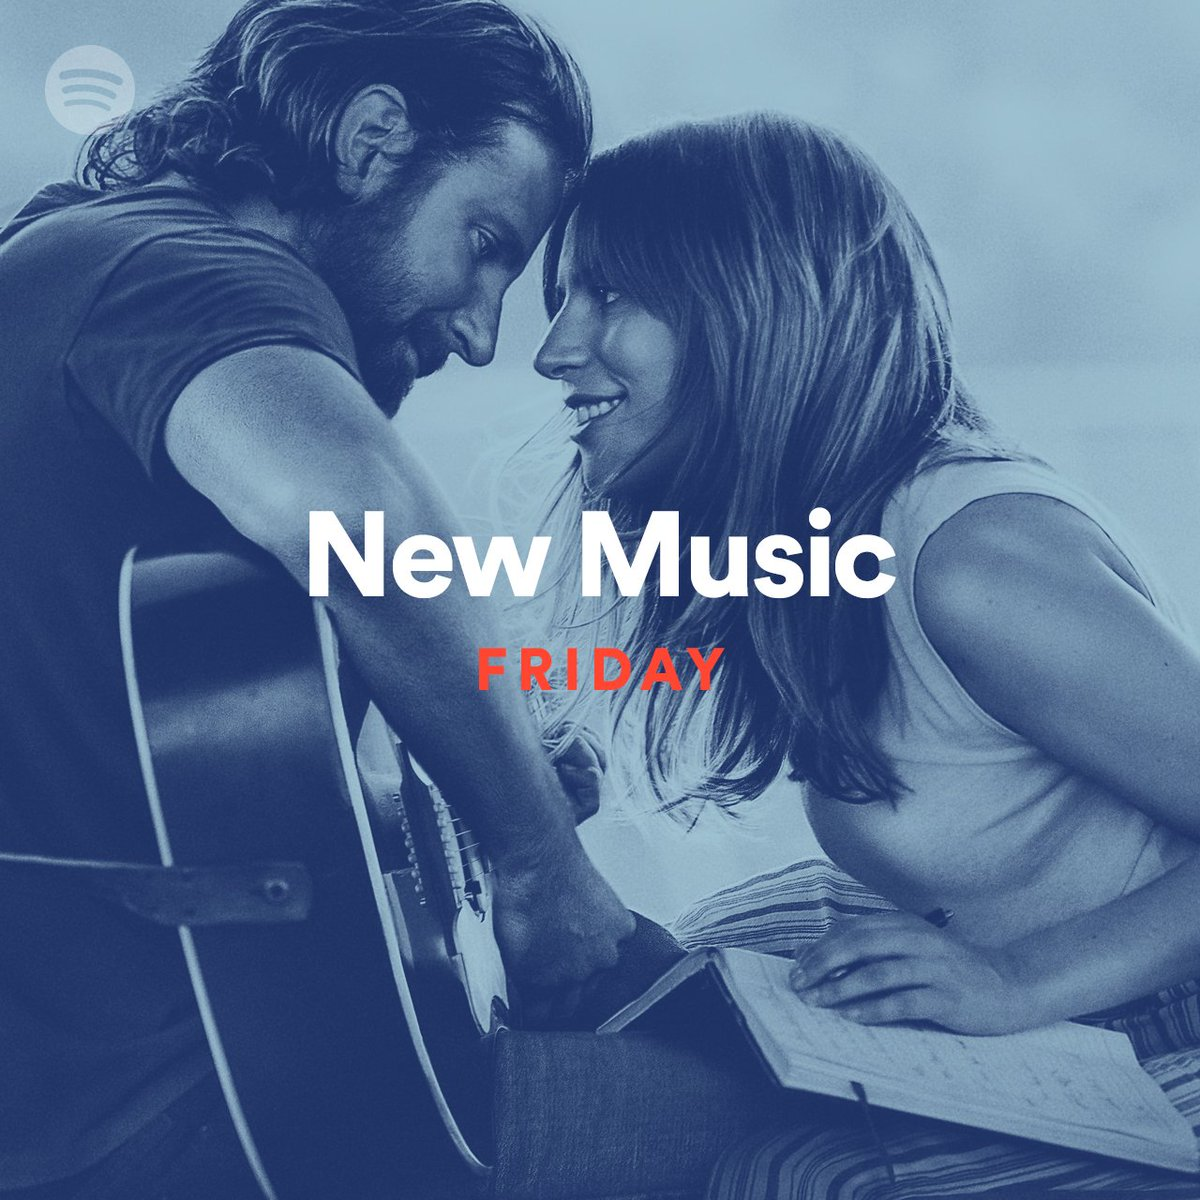 RT @SpotifyUK: .@LadyGaga and Bradley Cooper star in this week's #NewMusicFriday: https://t.co/slrbZx9h9a https://t.co/Ki4EaVID7X